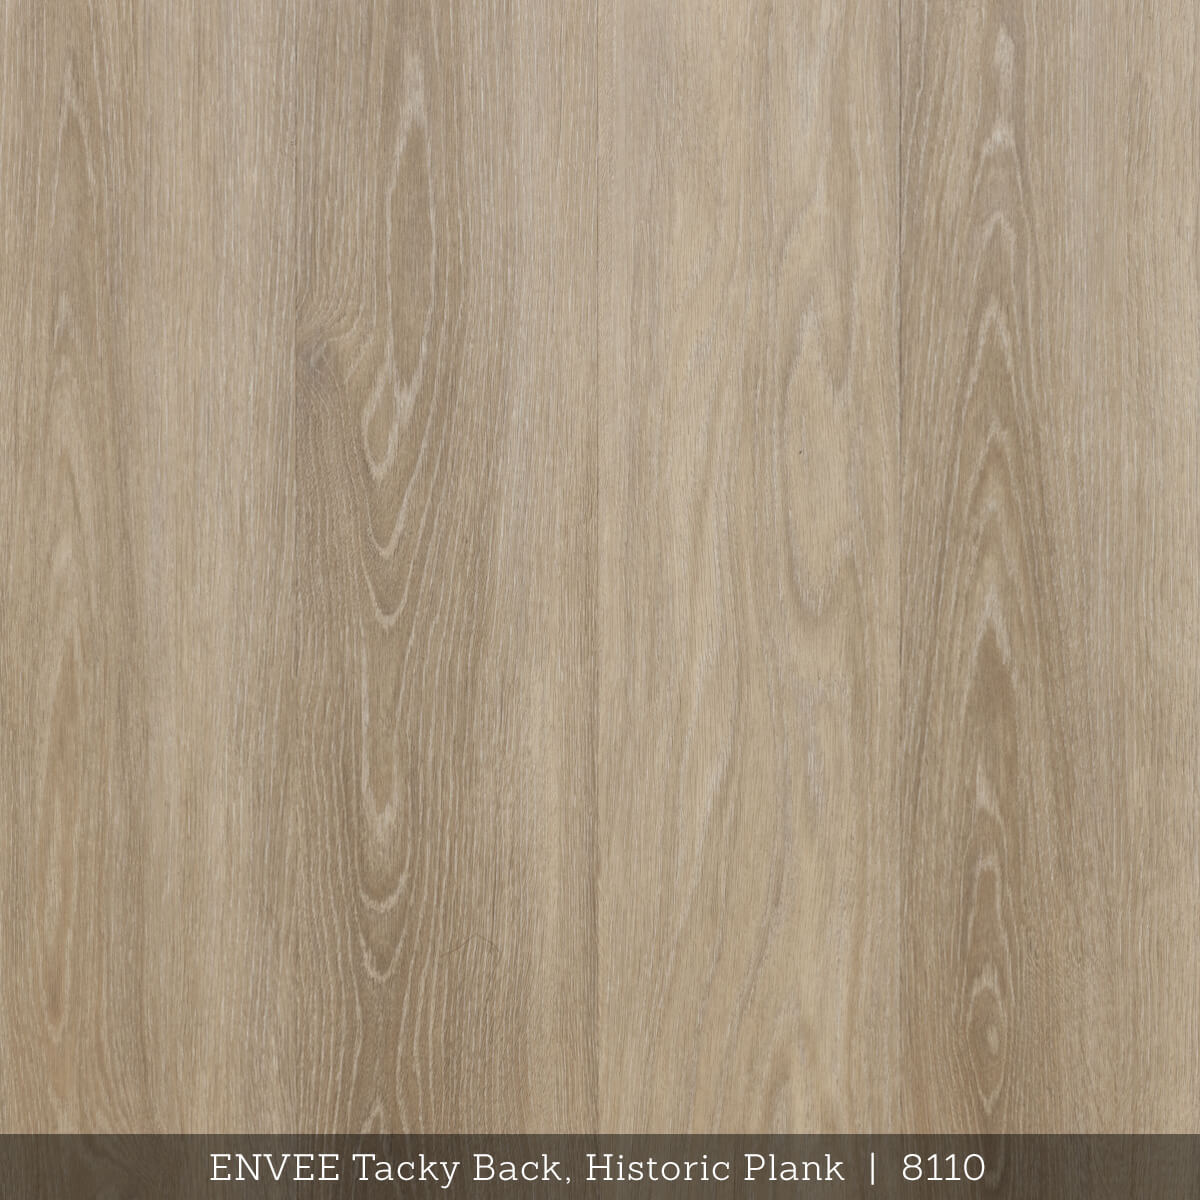 Envee Tacky Back, Historic Plank